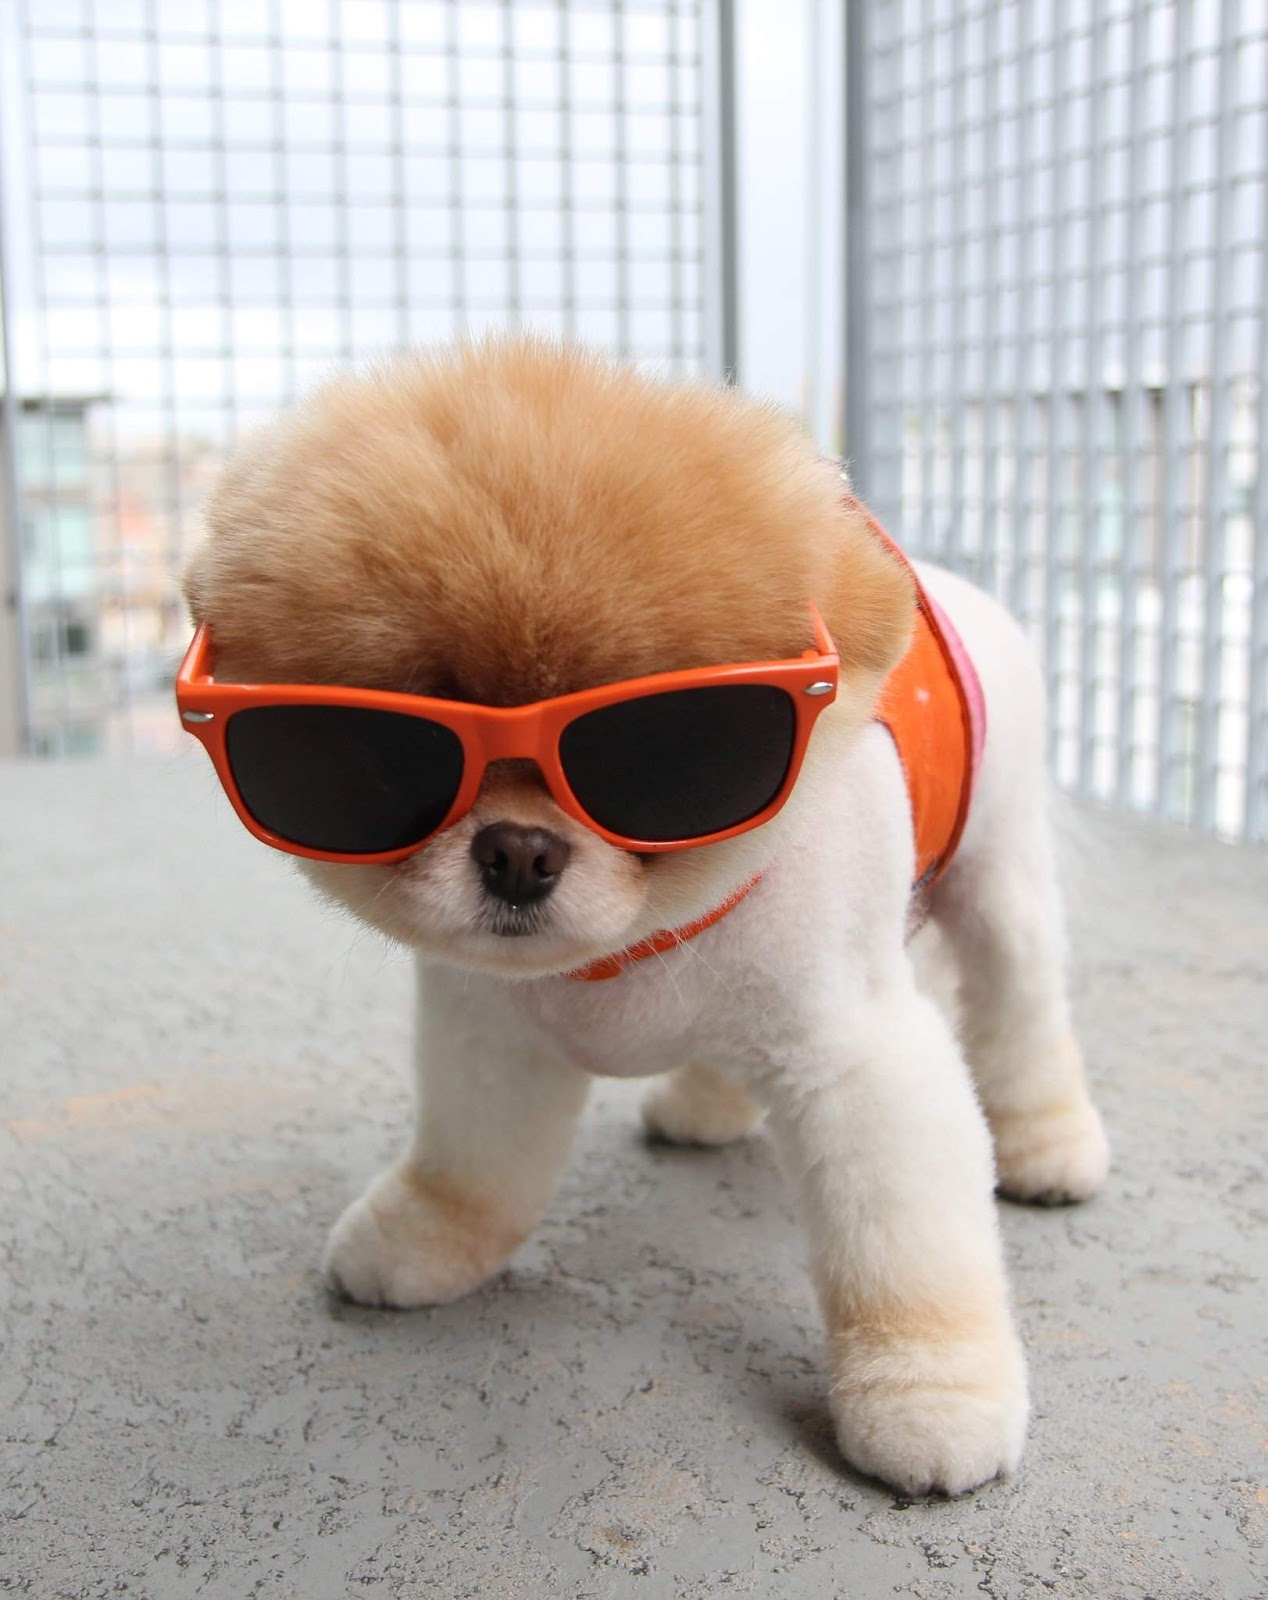 Cool dogs hd wallpapers wallpaper202 for Www cool